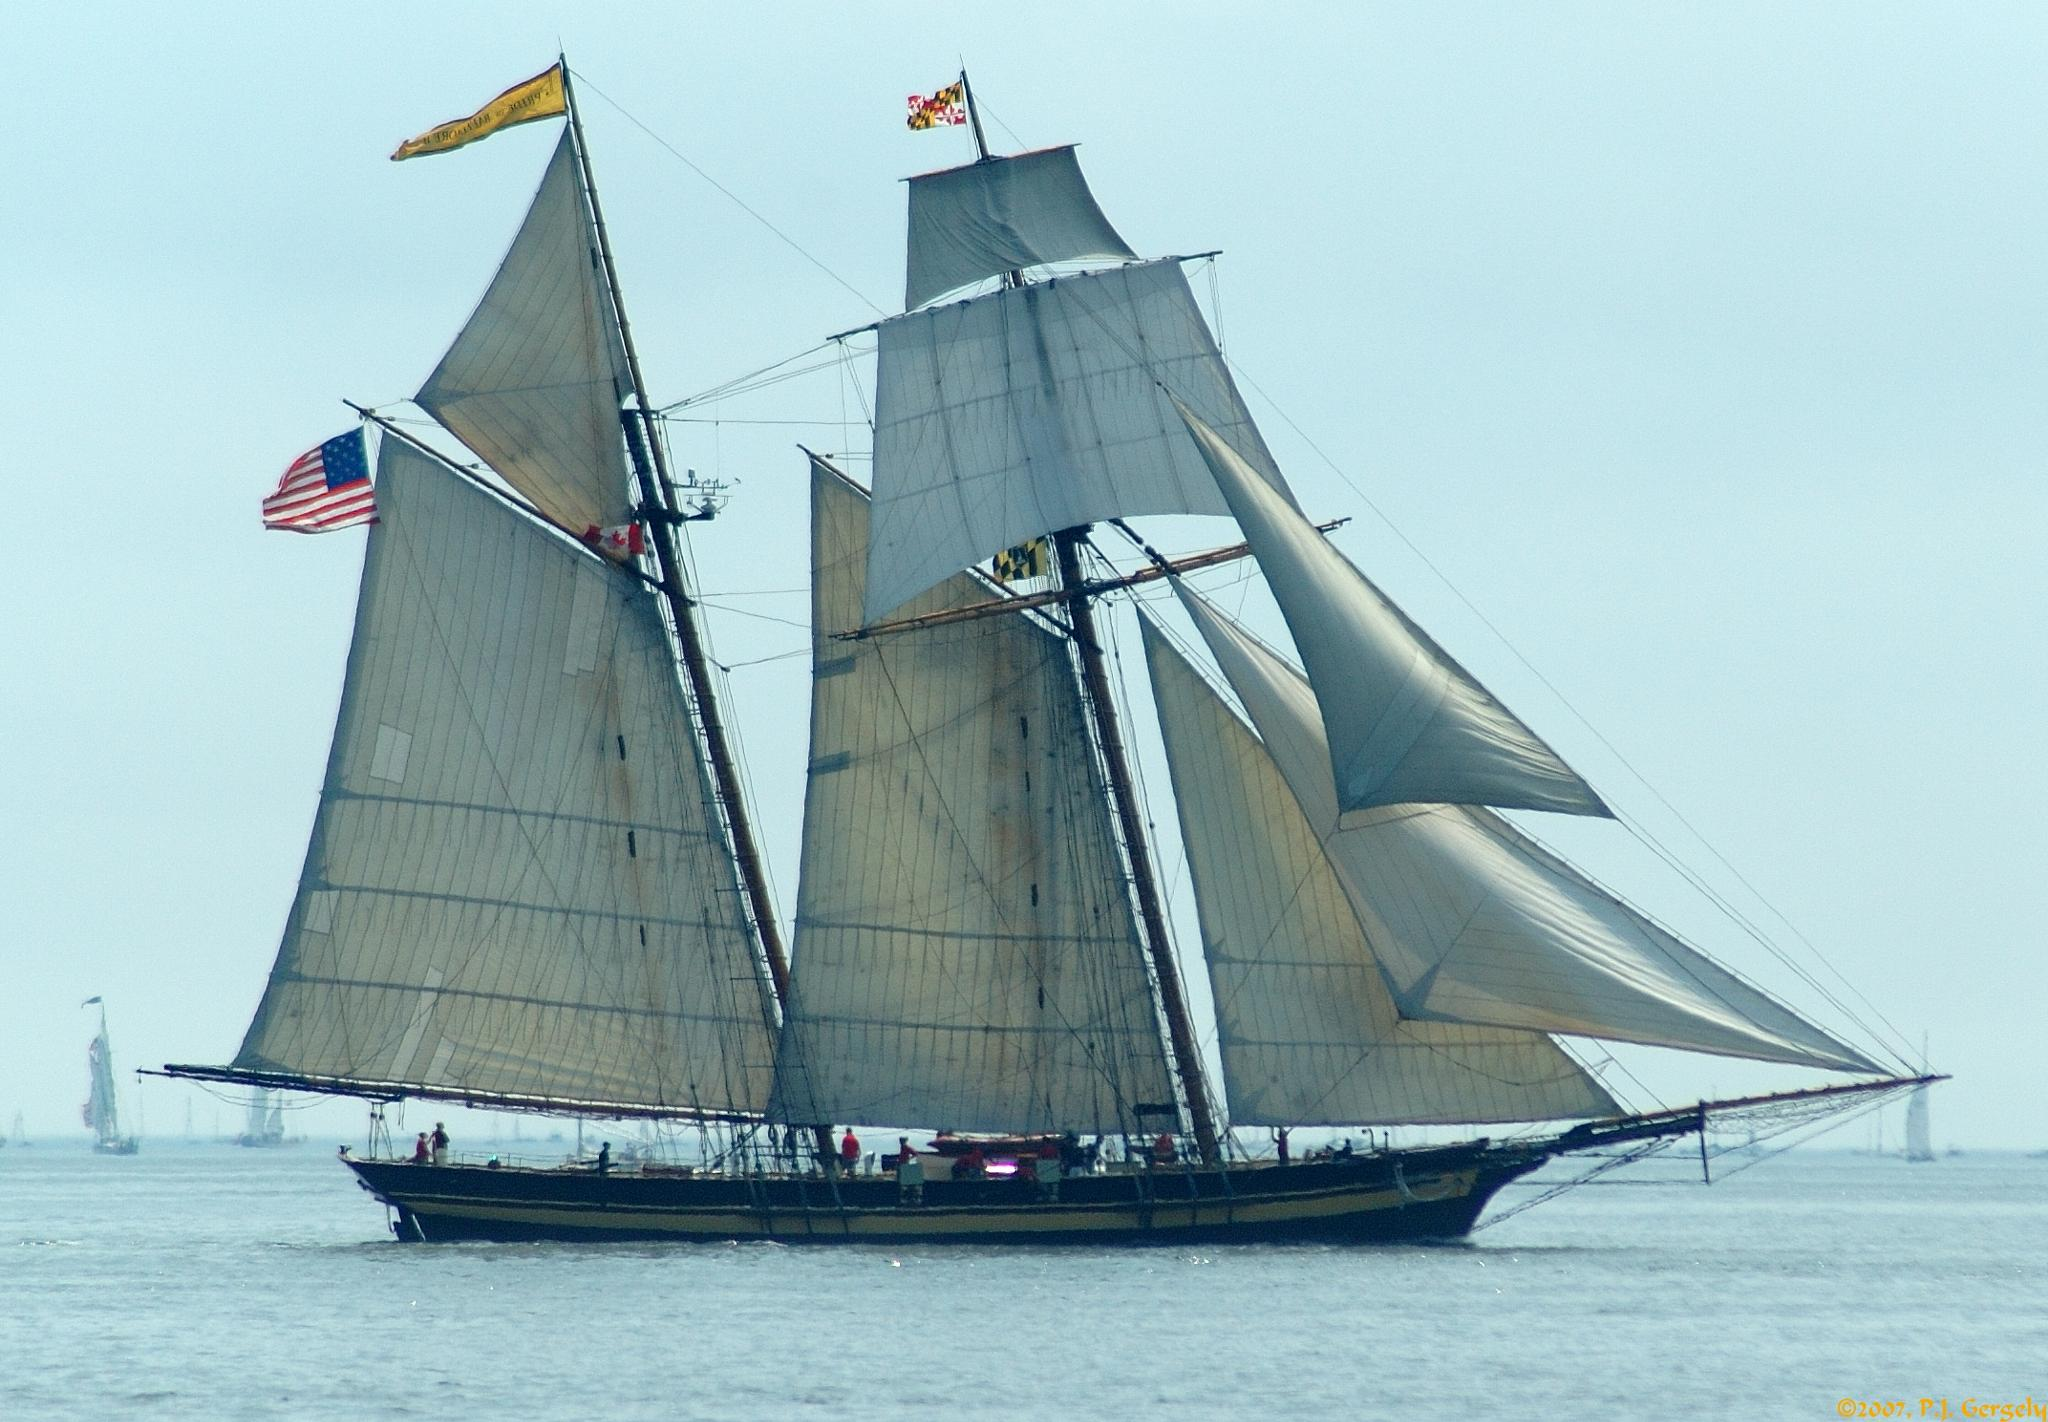 """Tall Ship """"Pride of Baltimore II"""" @ Halifax Parade of Sail 2007 (20070716-131921-PJG) by P.J. Gergely"""